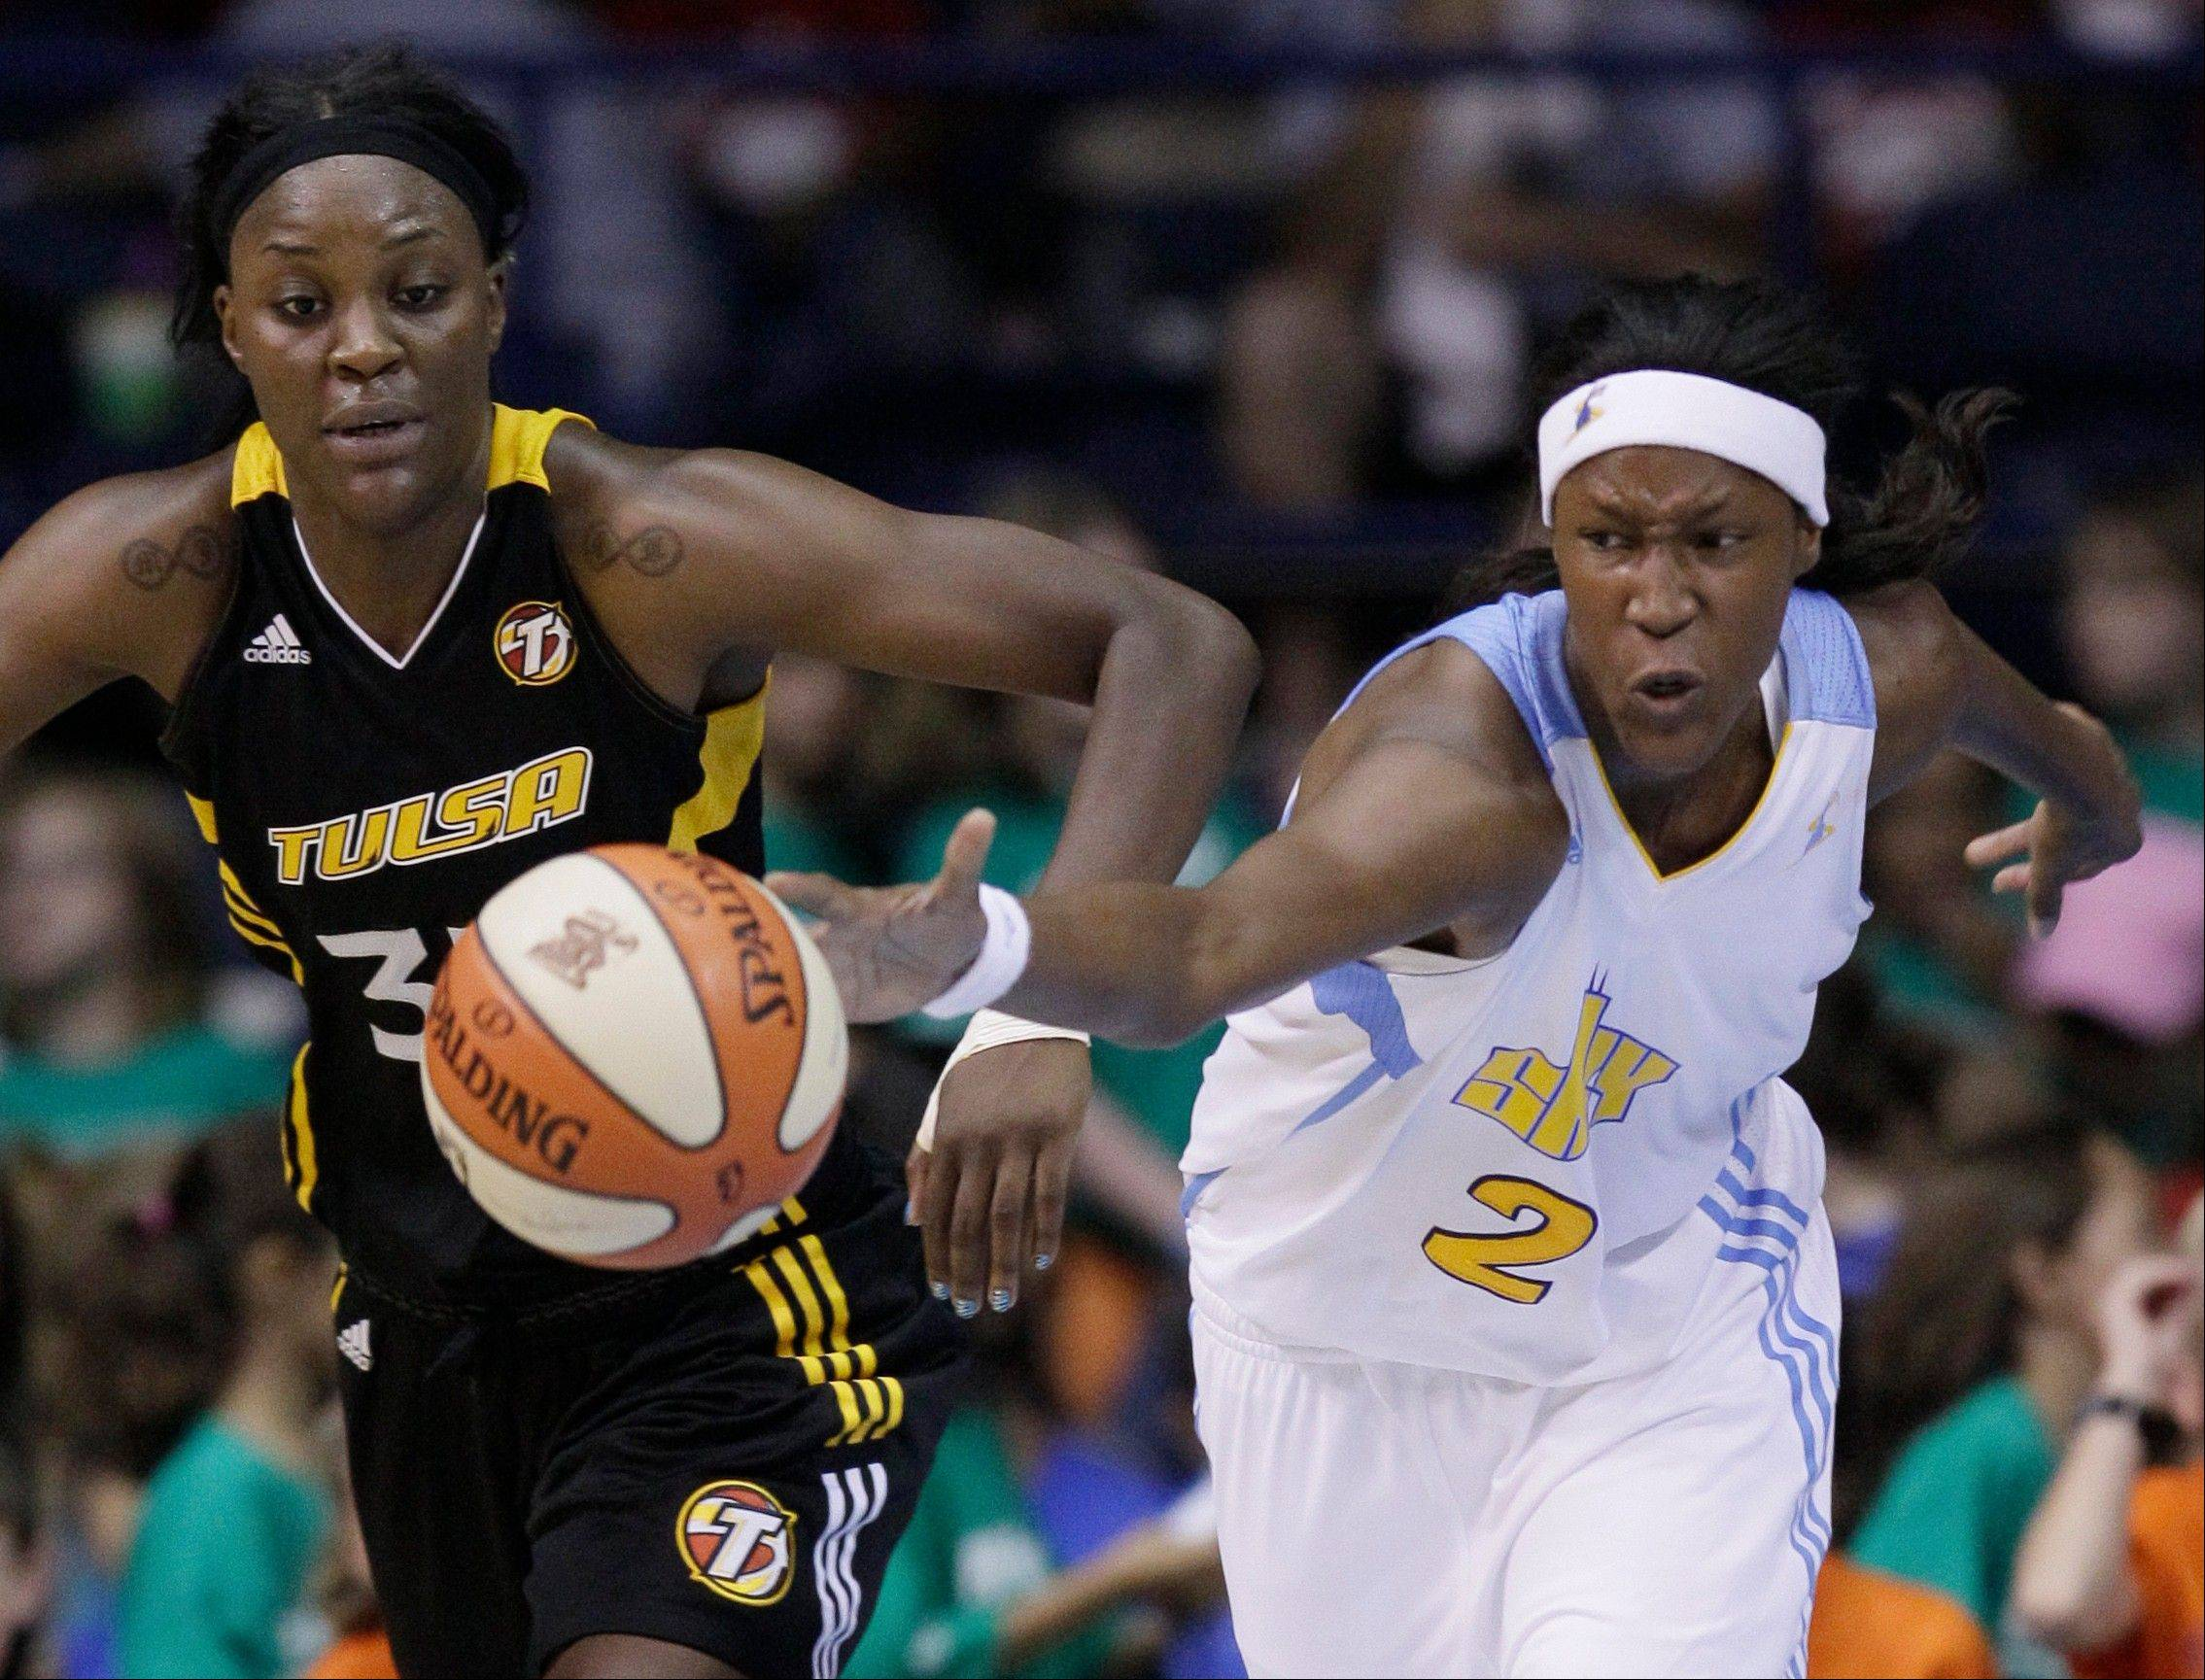 The Chicago Sky's Michelle Snow controls the ball past Tulsa Shock's Tiffany Jackson during the second half of their game Wednesday at the Allstate Arena.